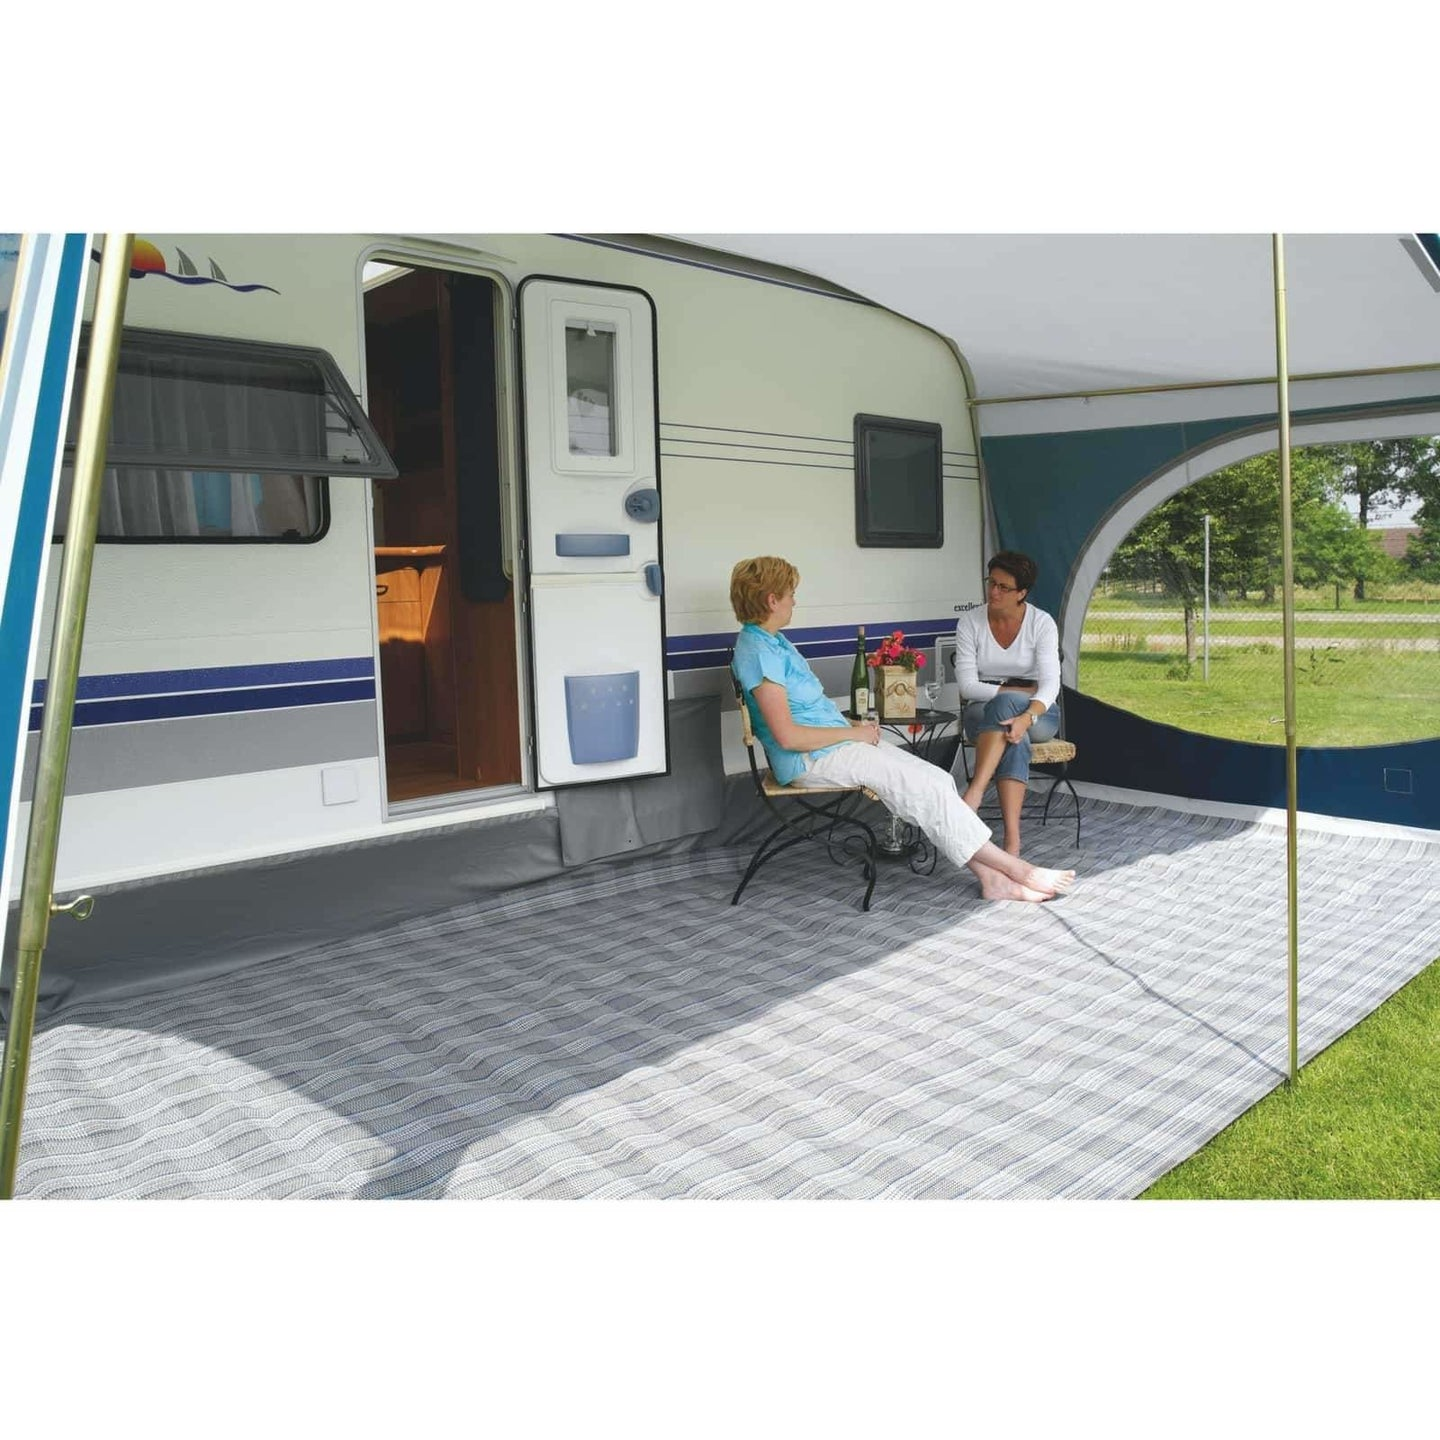 Jolax Awning Carpet for Touring-Plus Triton, Troll, Eriba Feeling 230, Trigano Silver 310/340/380, Maxi 380, Kip Shelter, T@B 320 (2018) - Quality Caravan Awnings